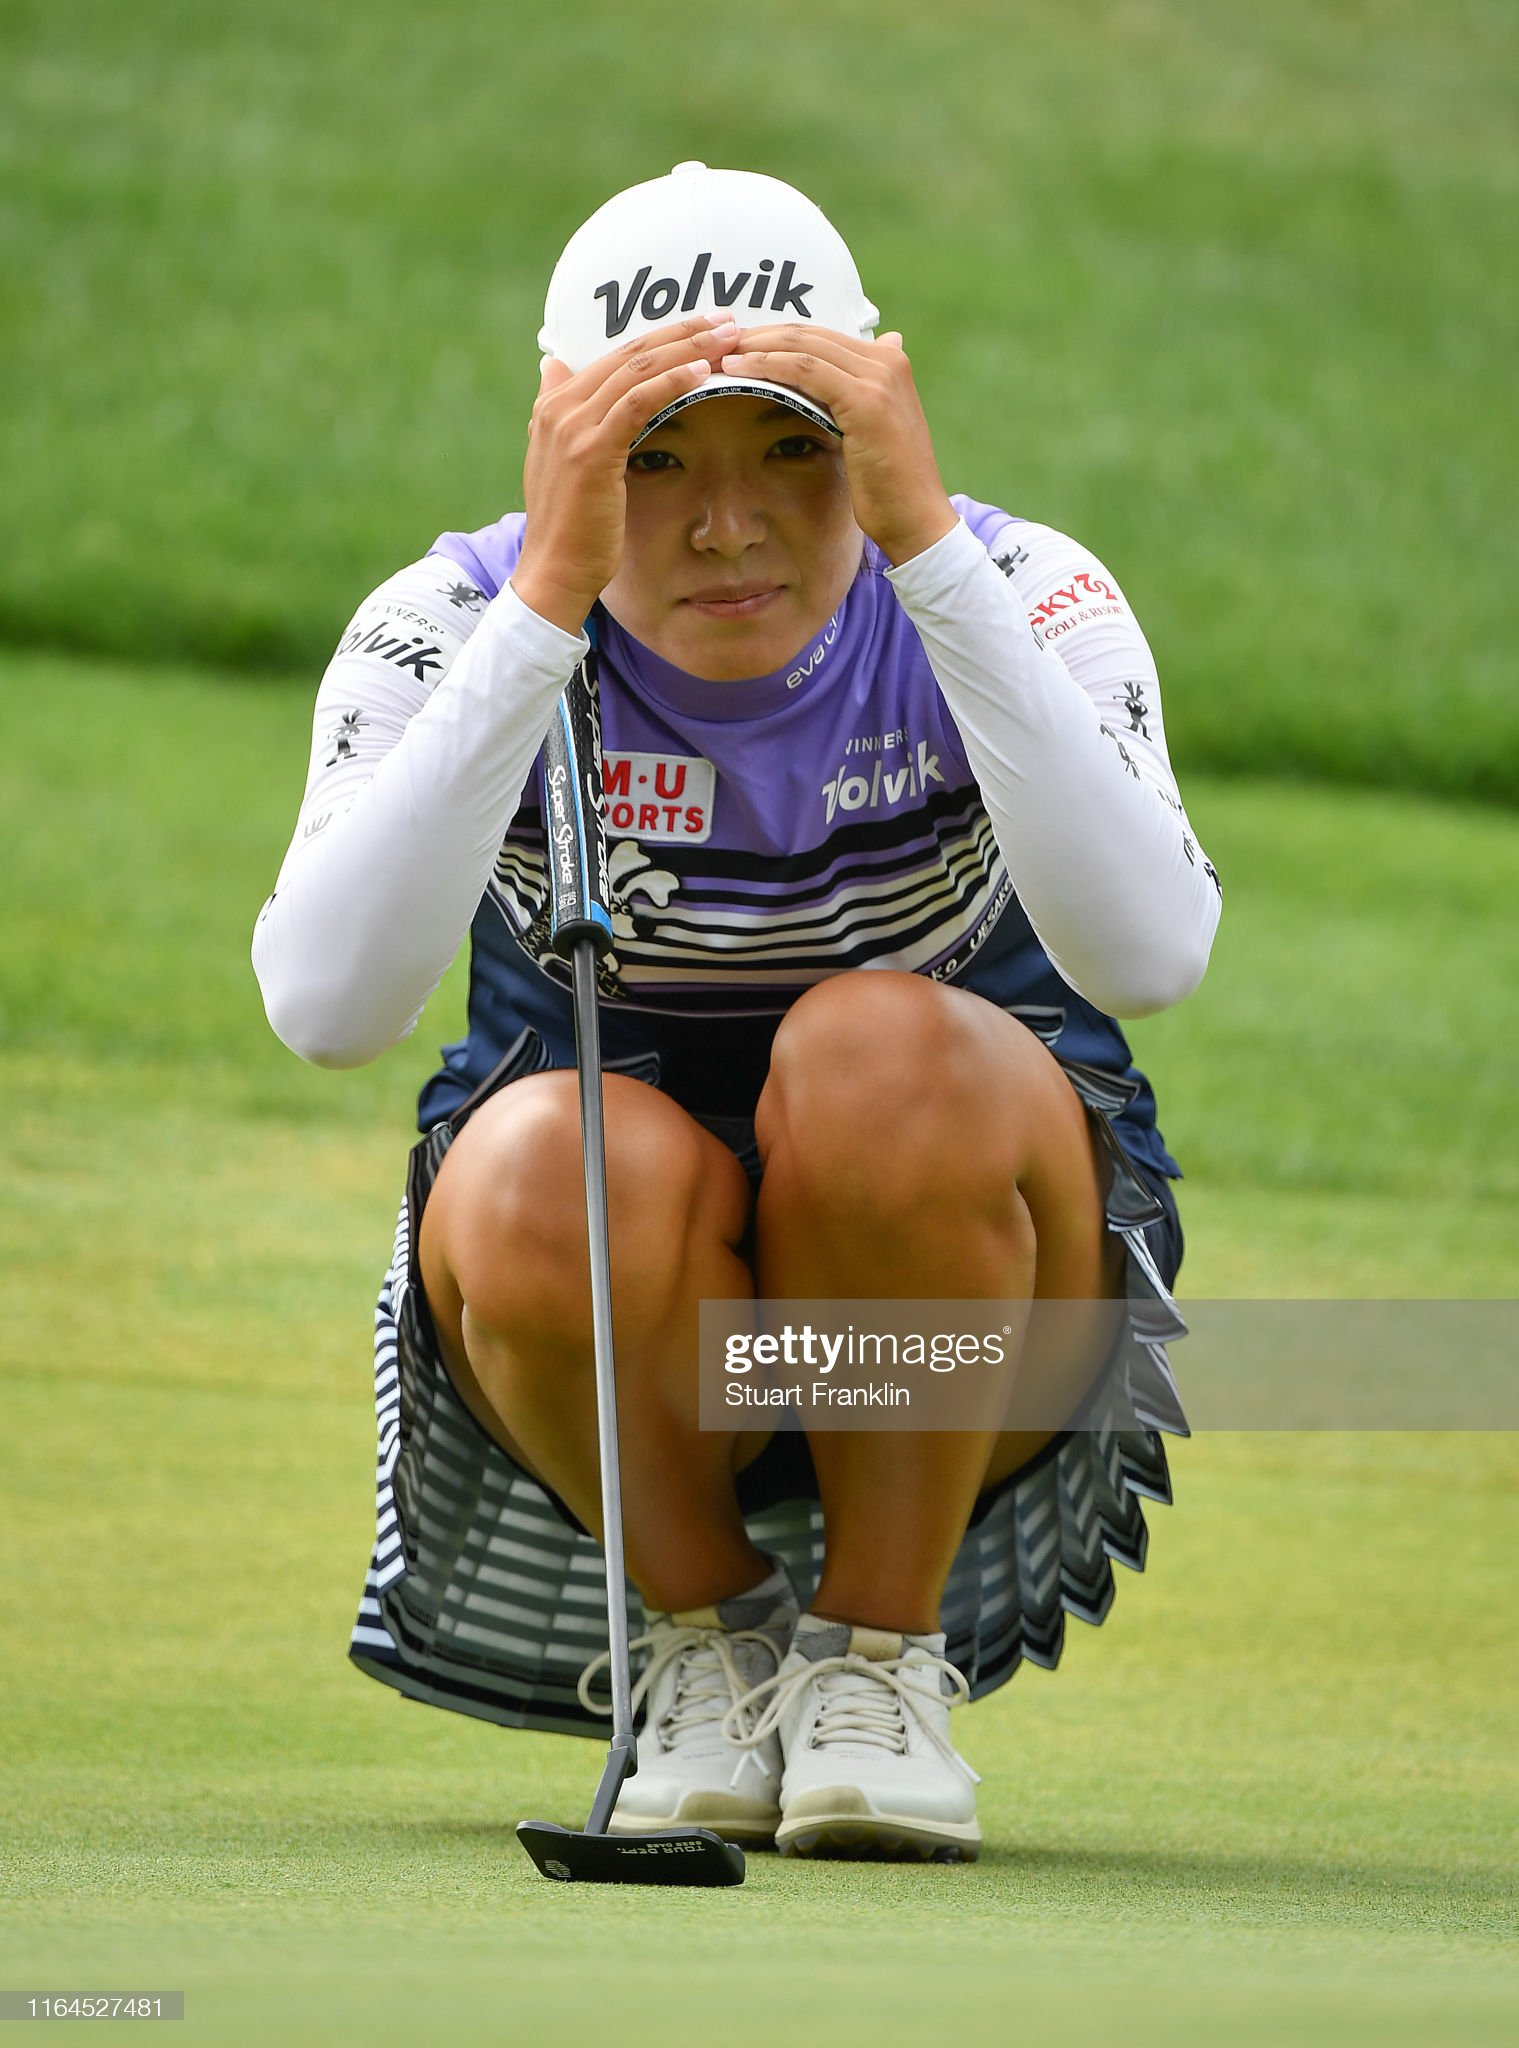 https://media.gettyimages.com/photos/mi-hyang-lee-of-korea-lines-up-a-putt-during-day-3-of-the-evian-at-picture-id1164527481?s=2048x2048